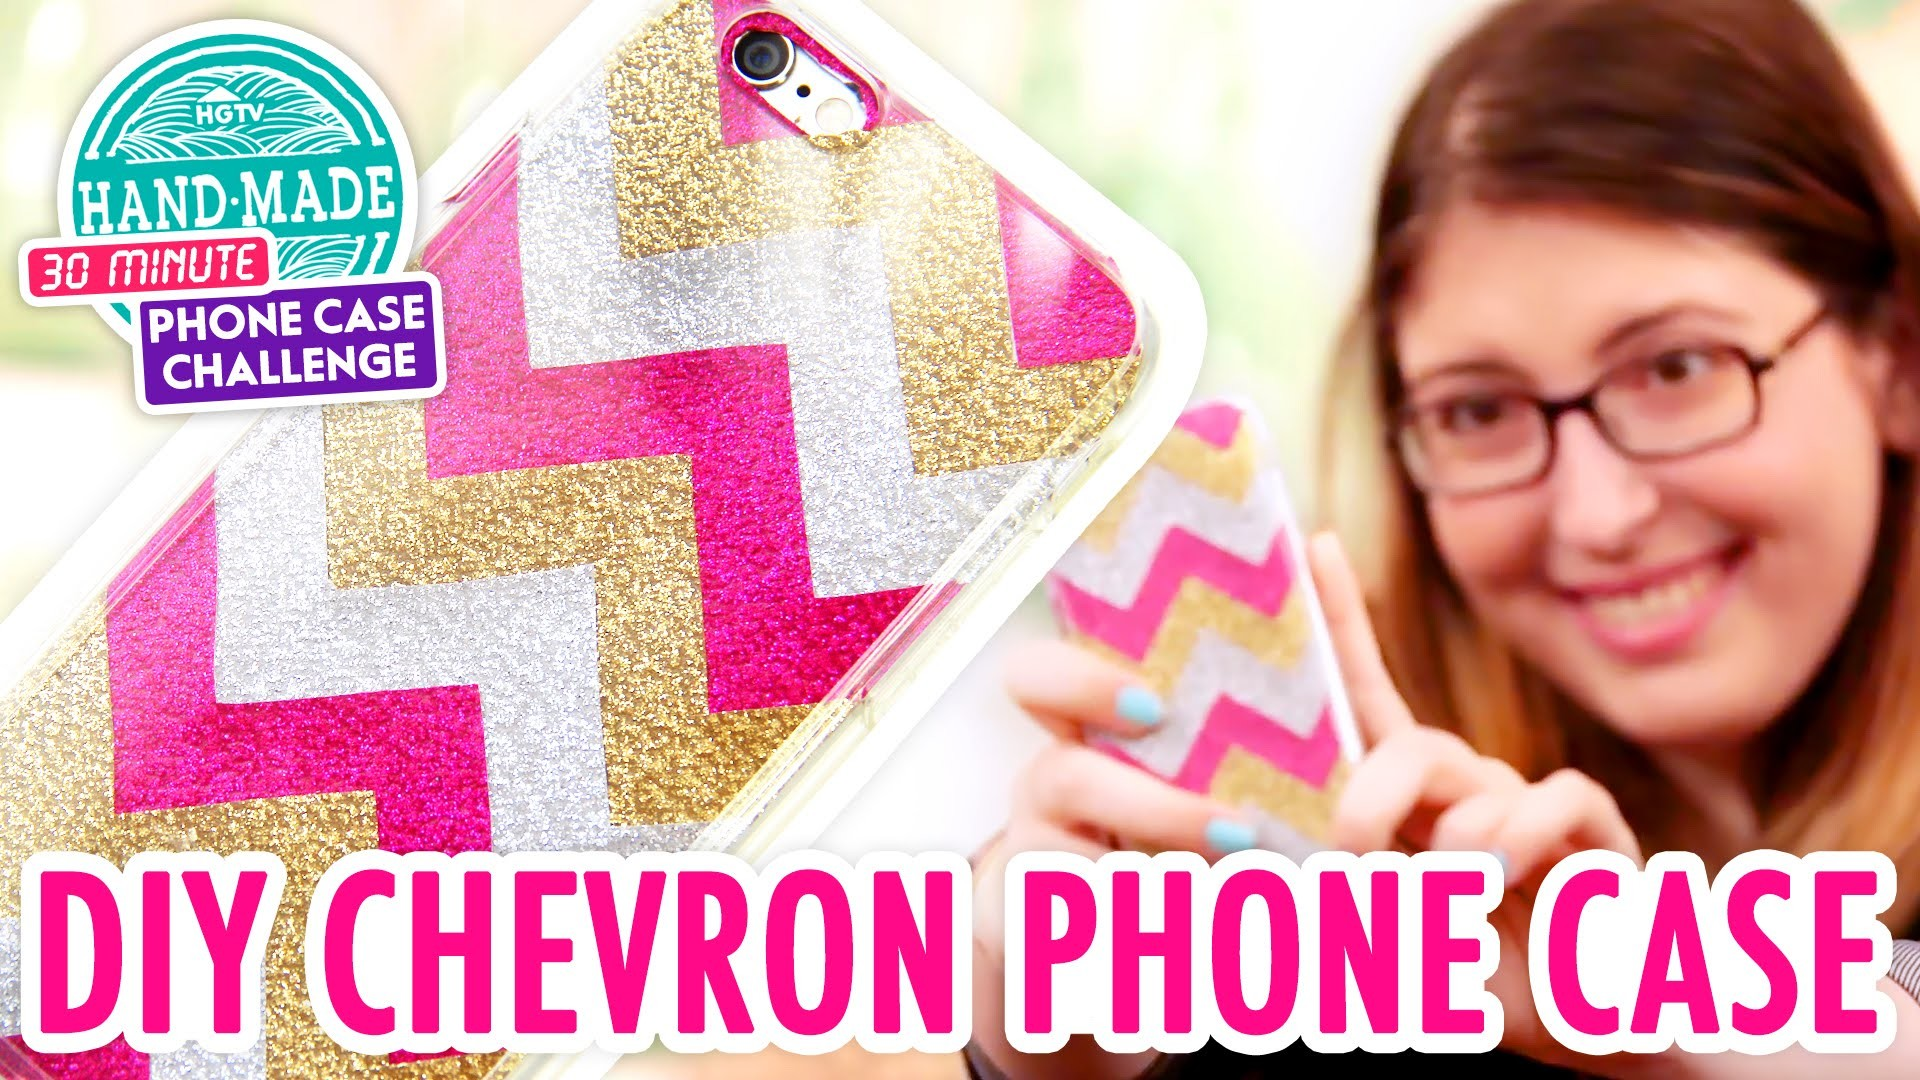 DIY Glitter Chevron Phone Case - HGTV Handmade Phone Case Challenge